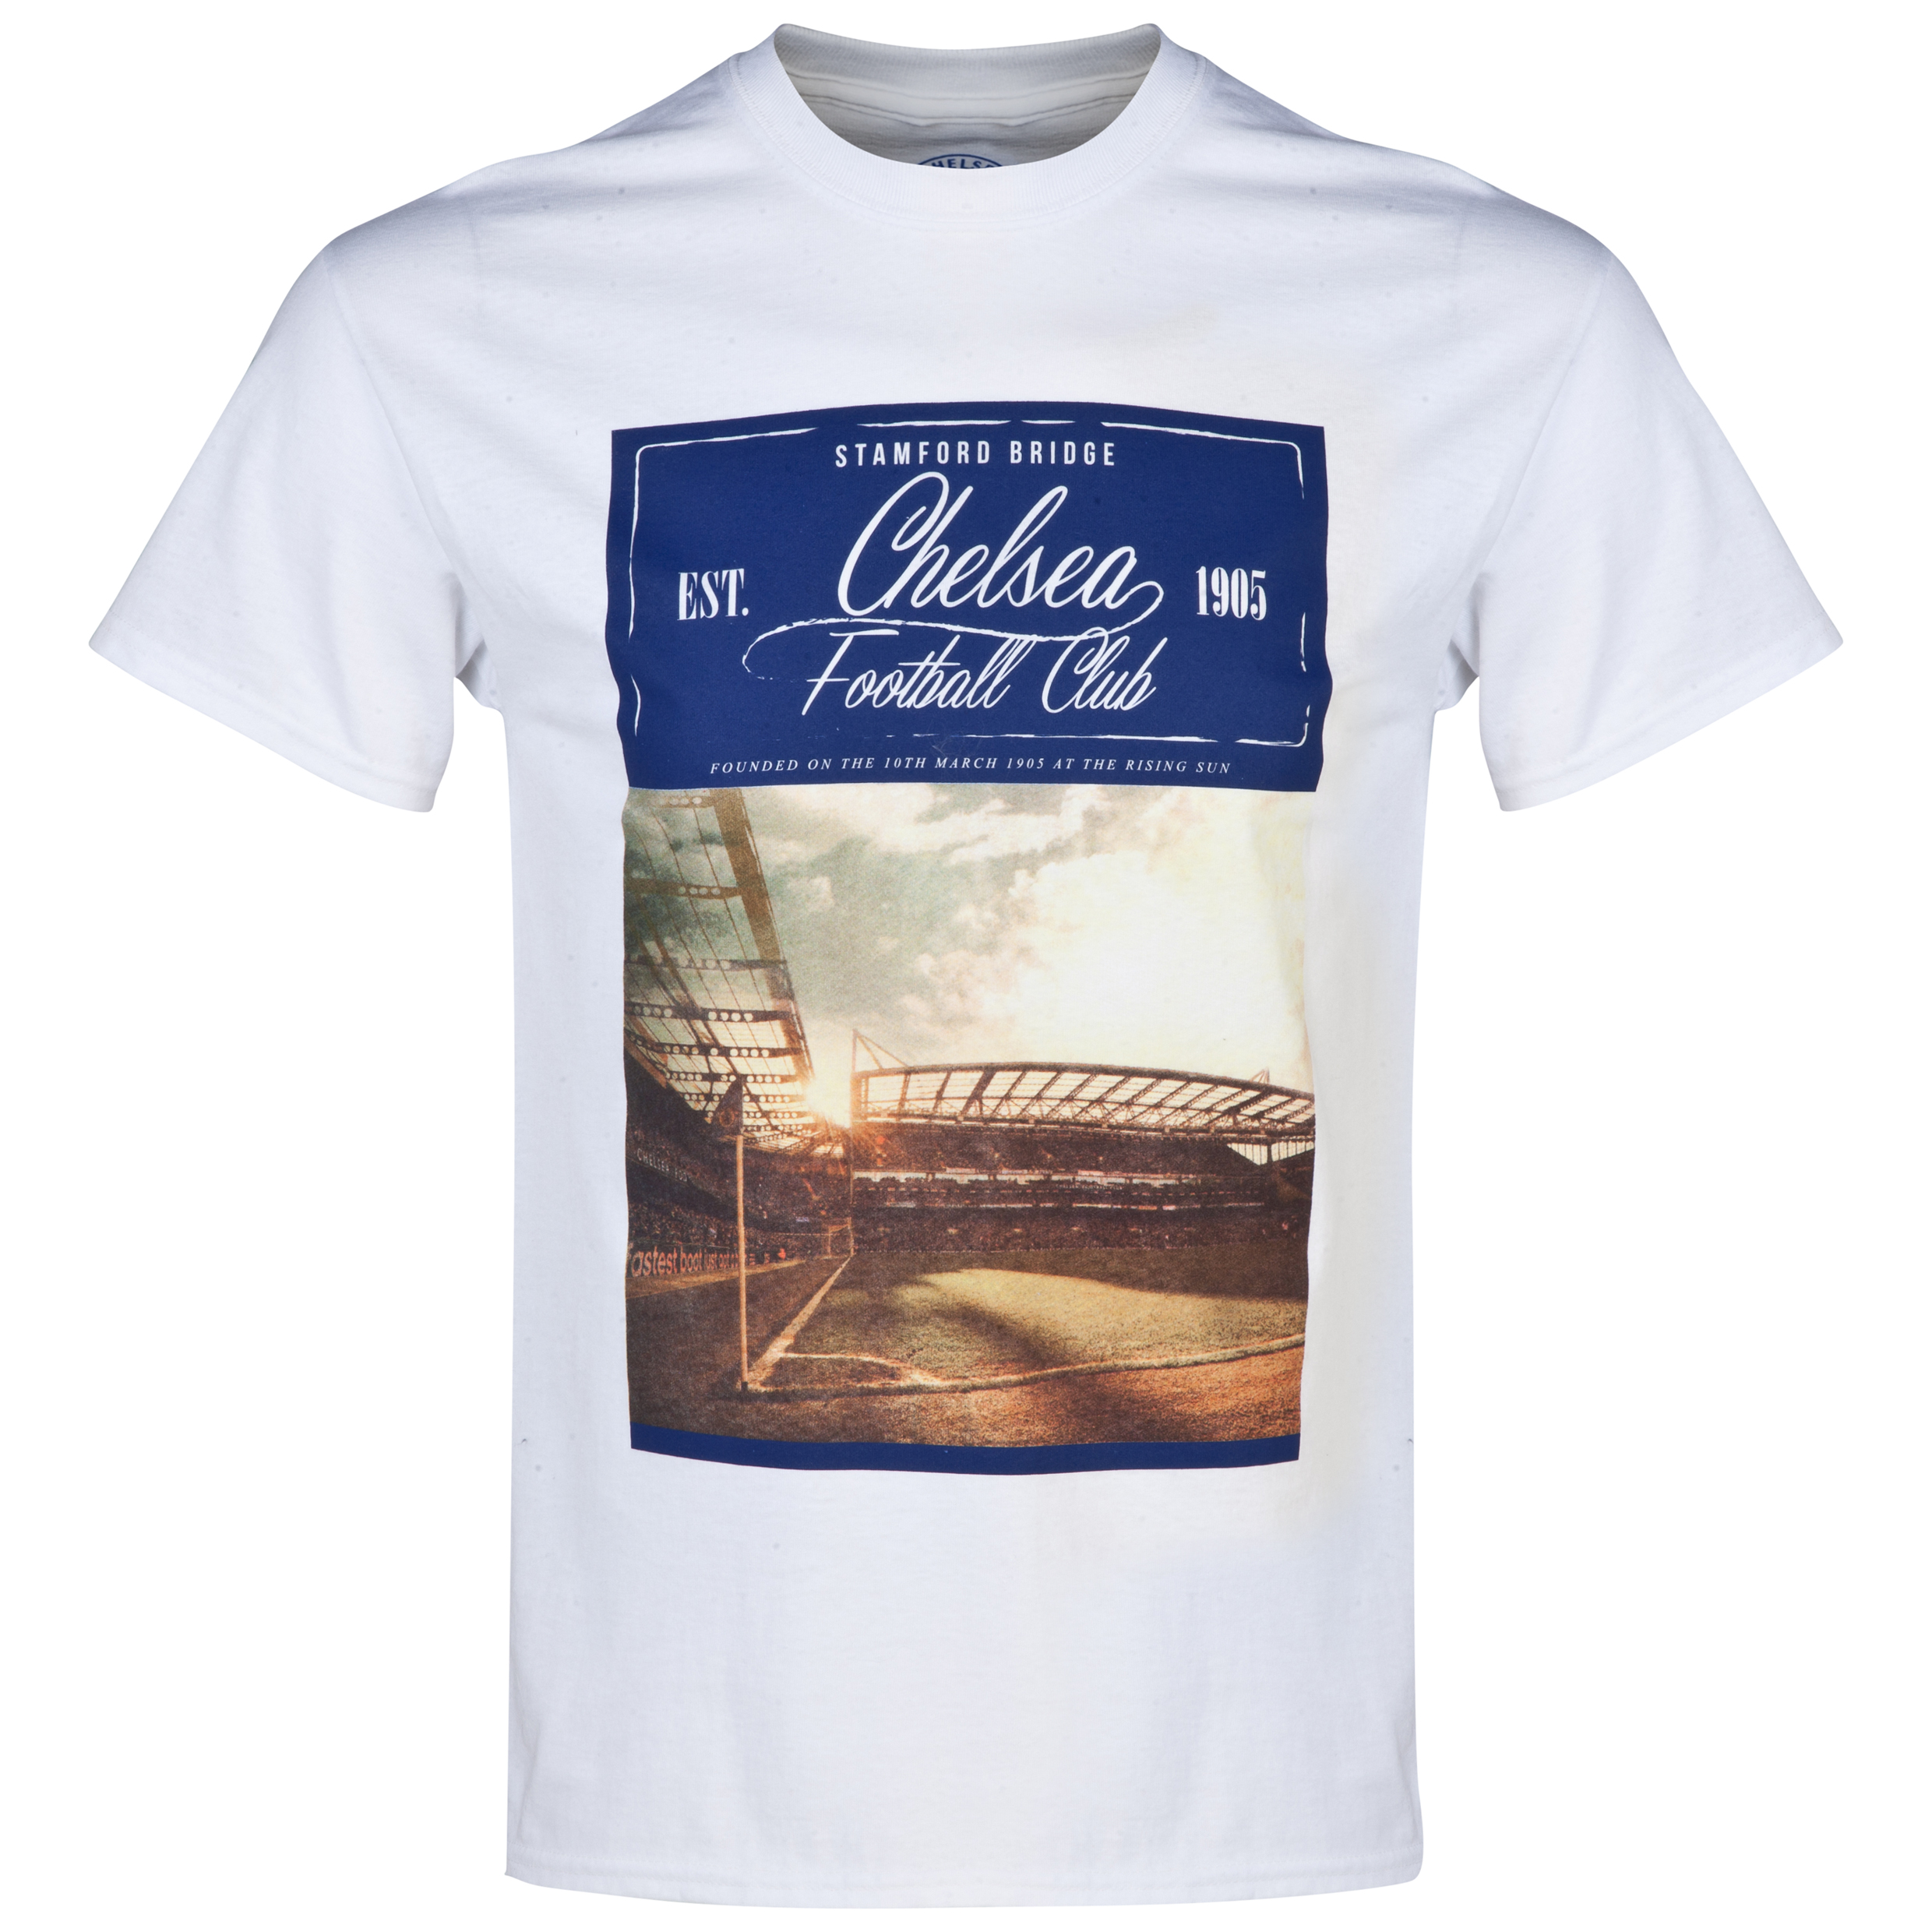 Chelsea Pitch T-Shirt - Mens White